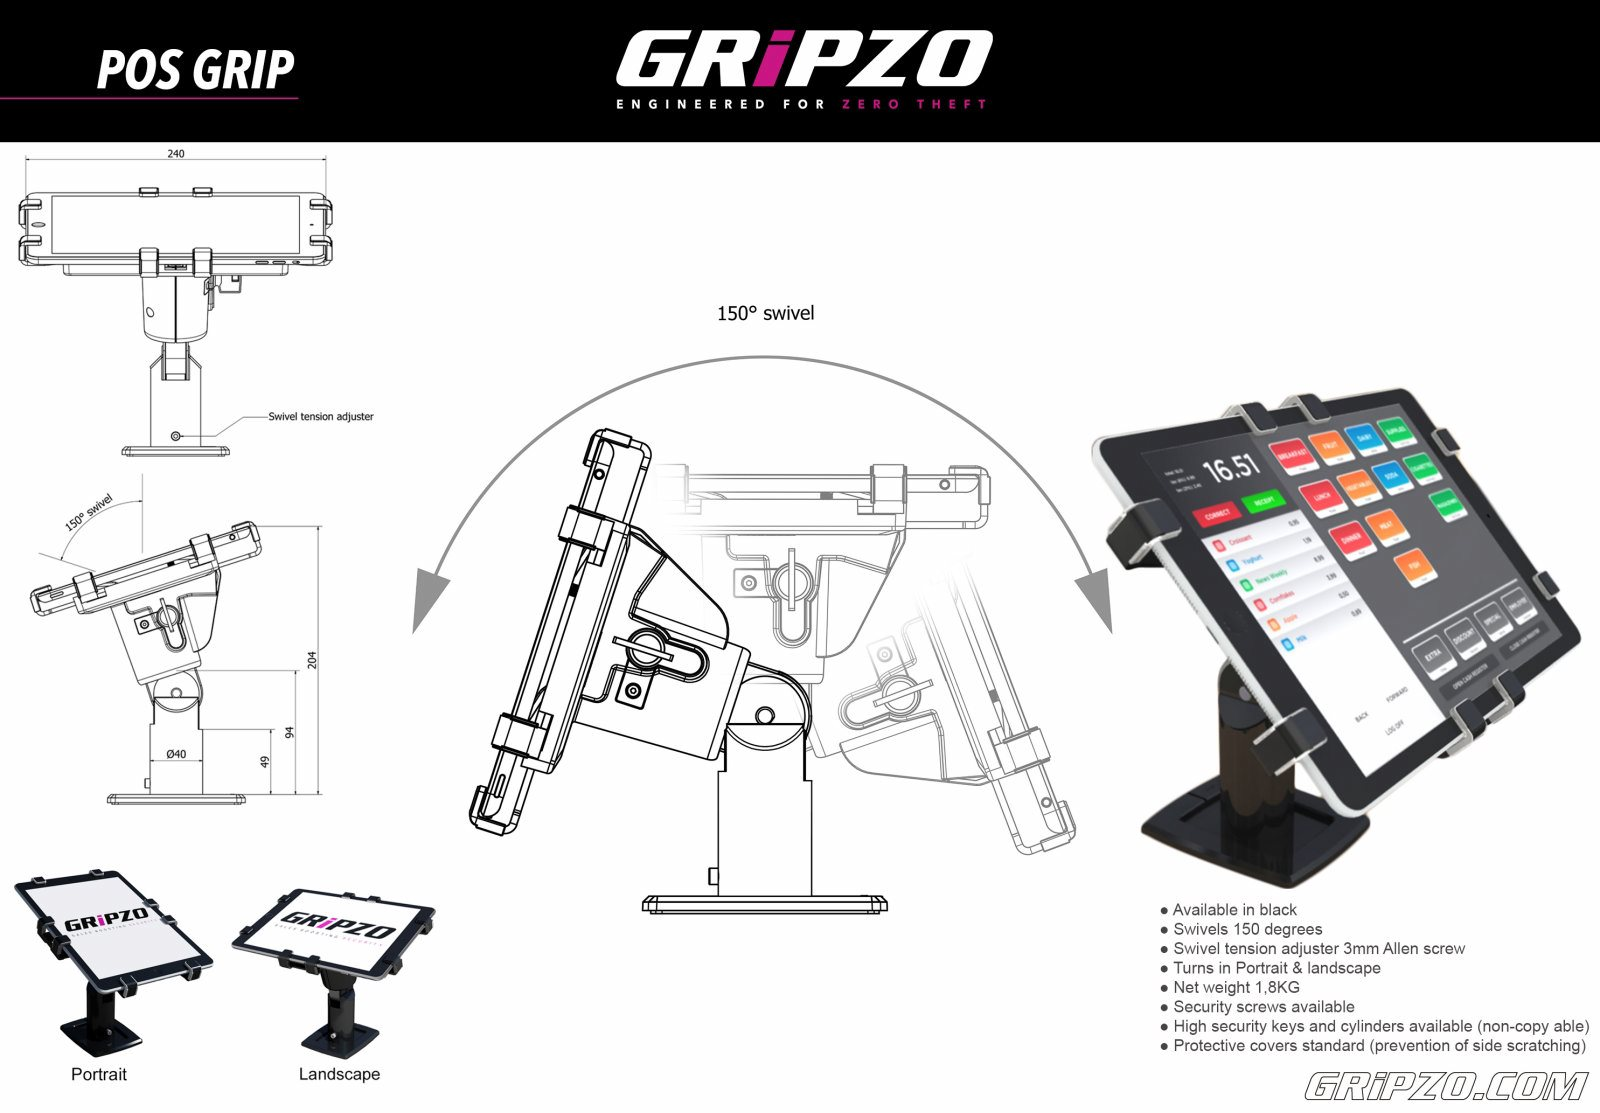 gripzo-pos-grip-product-sheet-19-1-2015.jpg